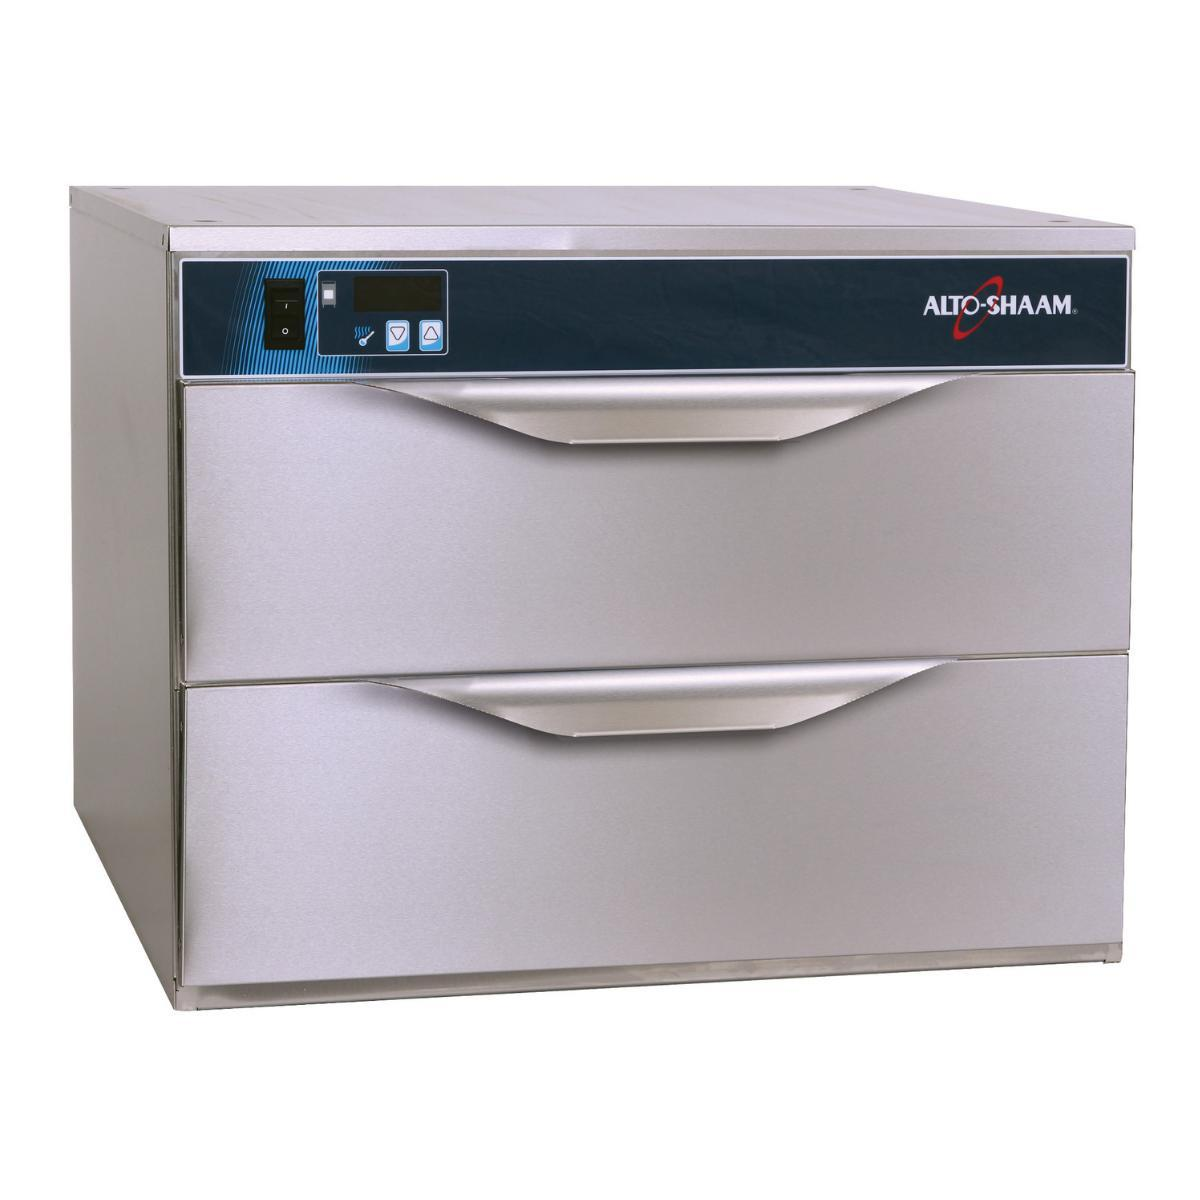 Alto-Shaam 500-2D 2 Drawer Warmer